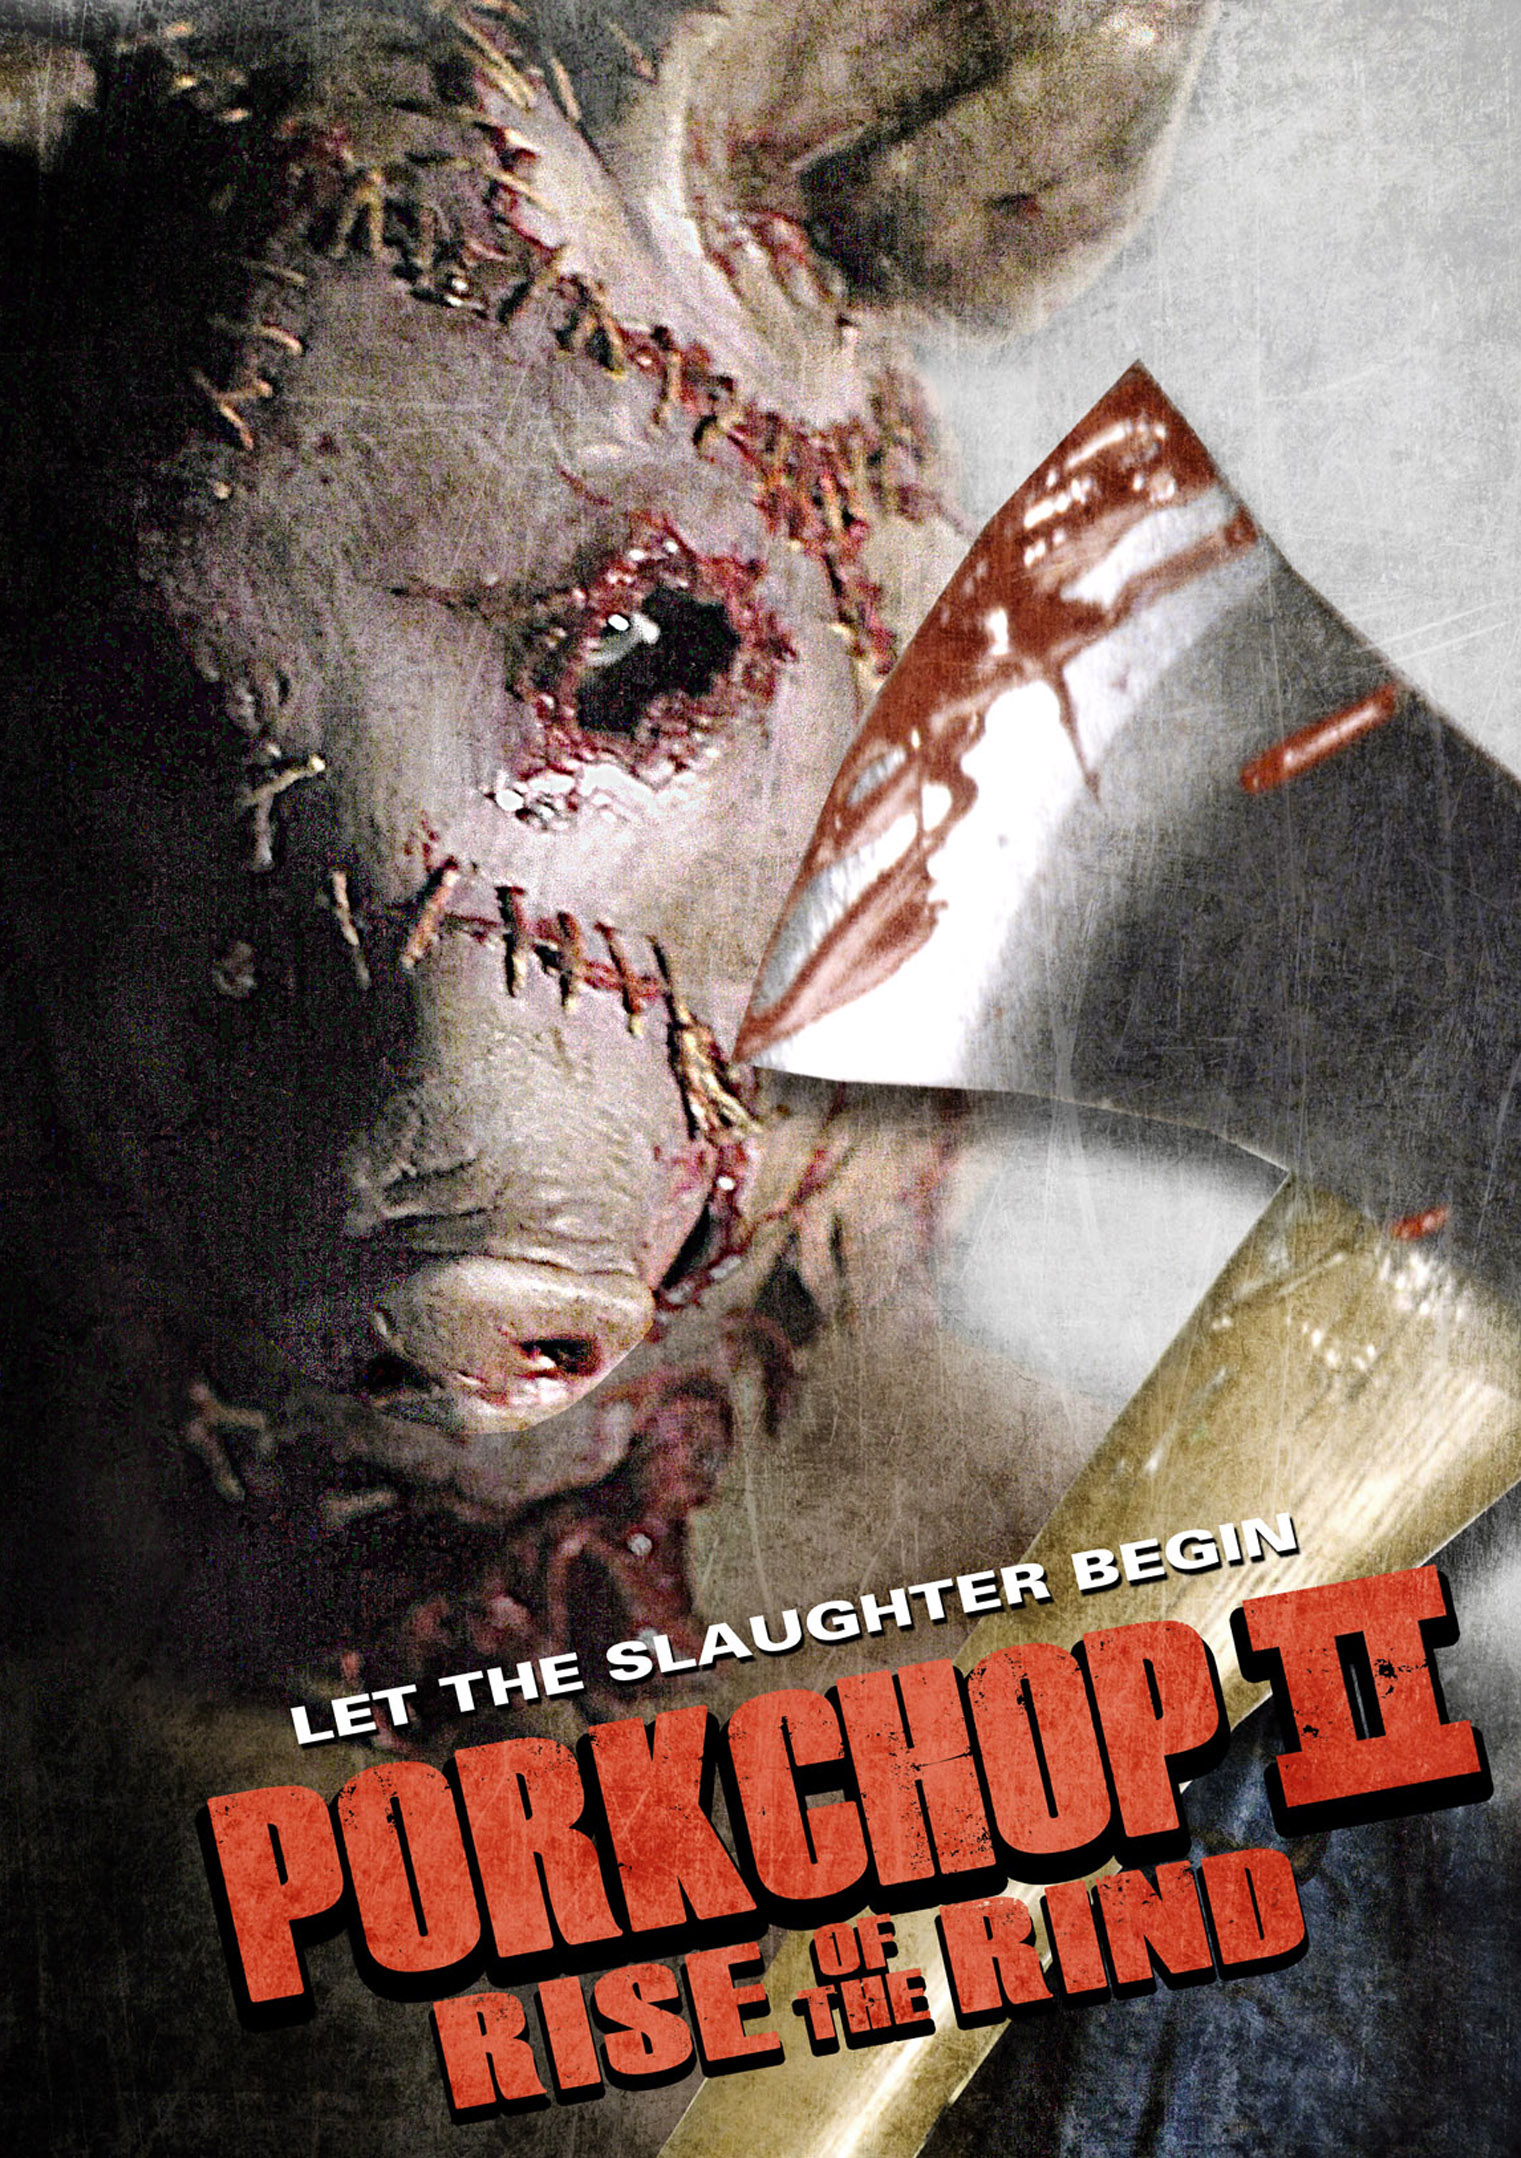 Porkchop II: Rise of the Rind